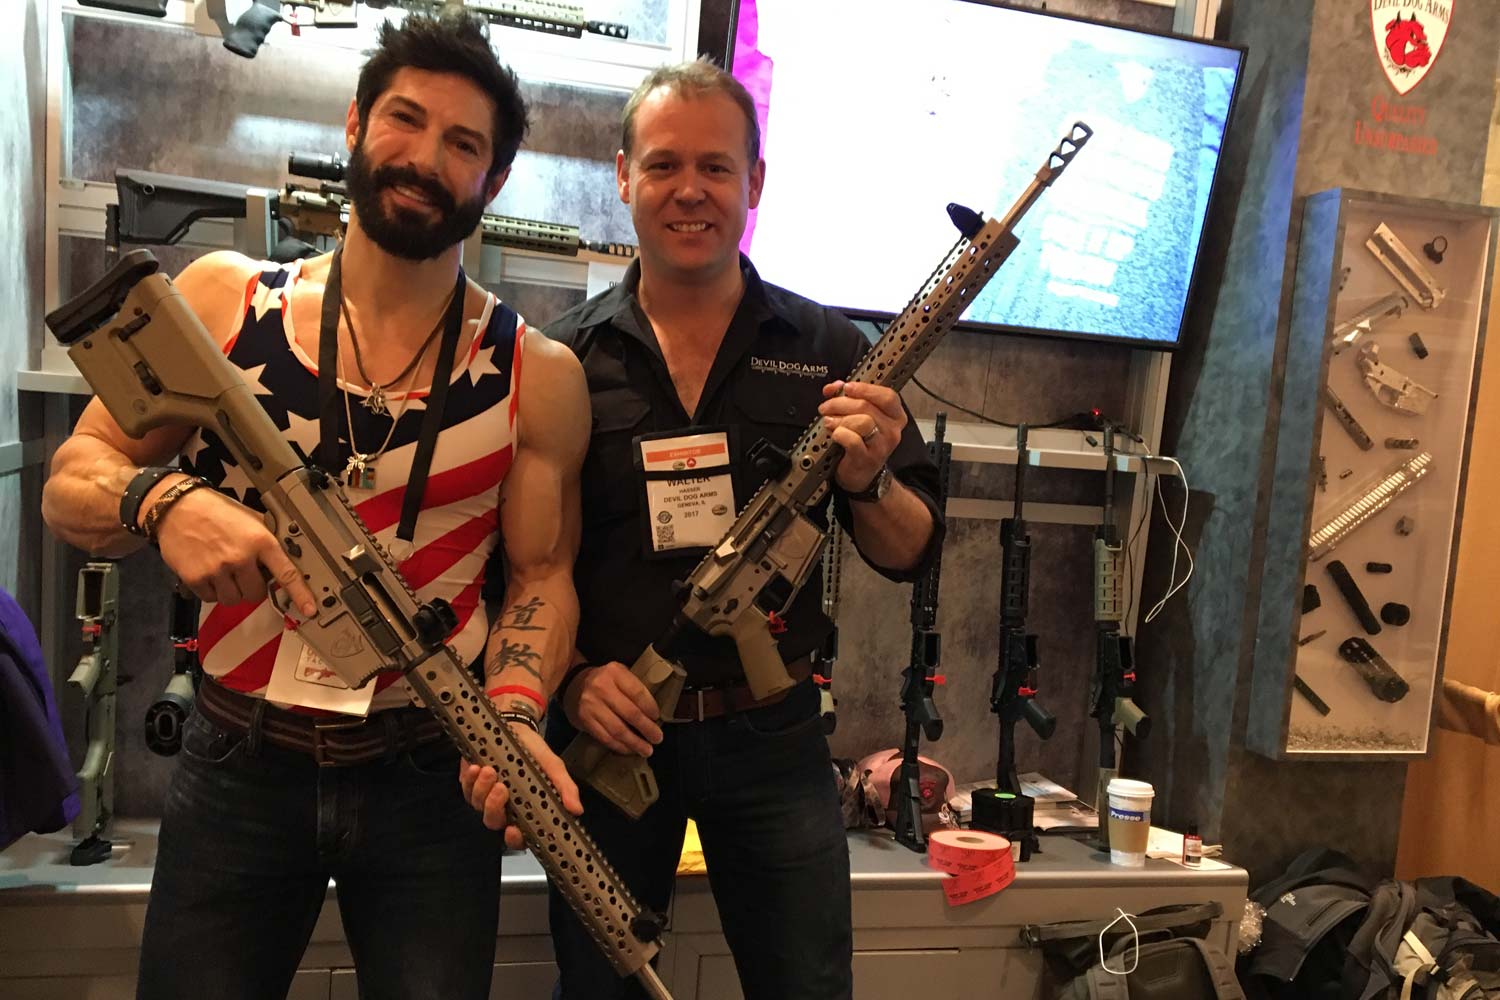 After Stolen Valor Scandal Gun Company Returns With